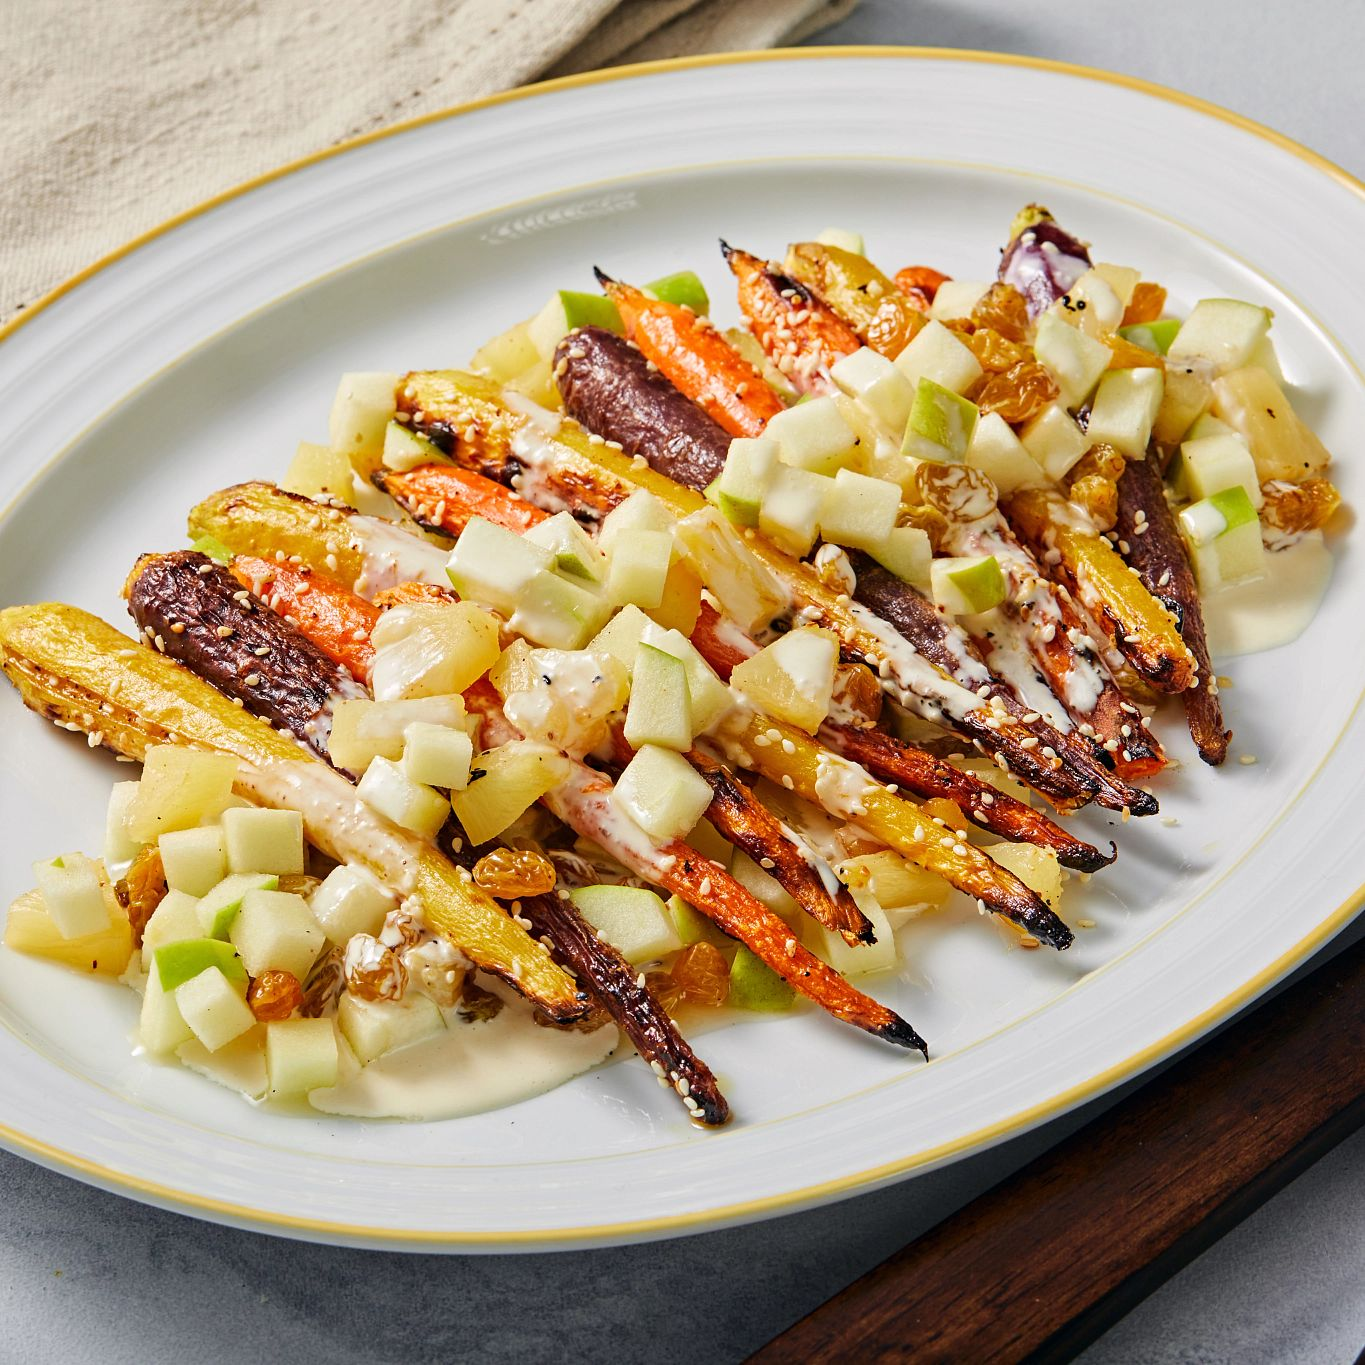 Carla Hall's Warm Carrot Salad with Creamy Lemon Dressing